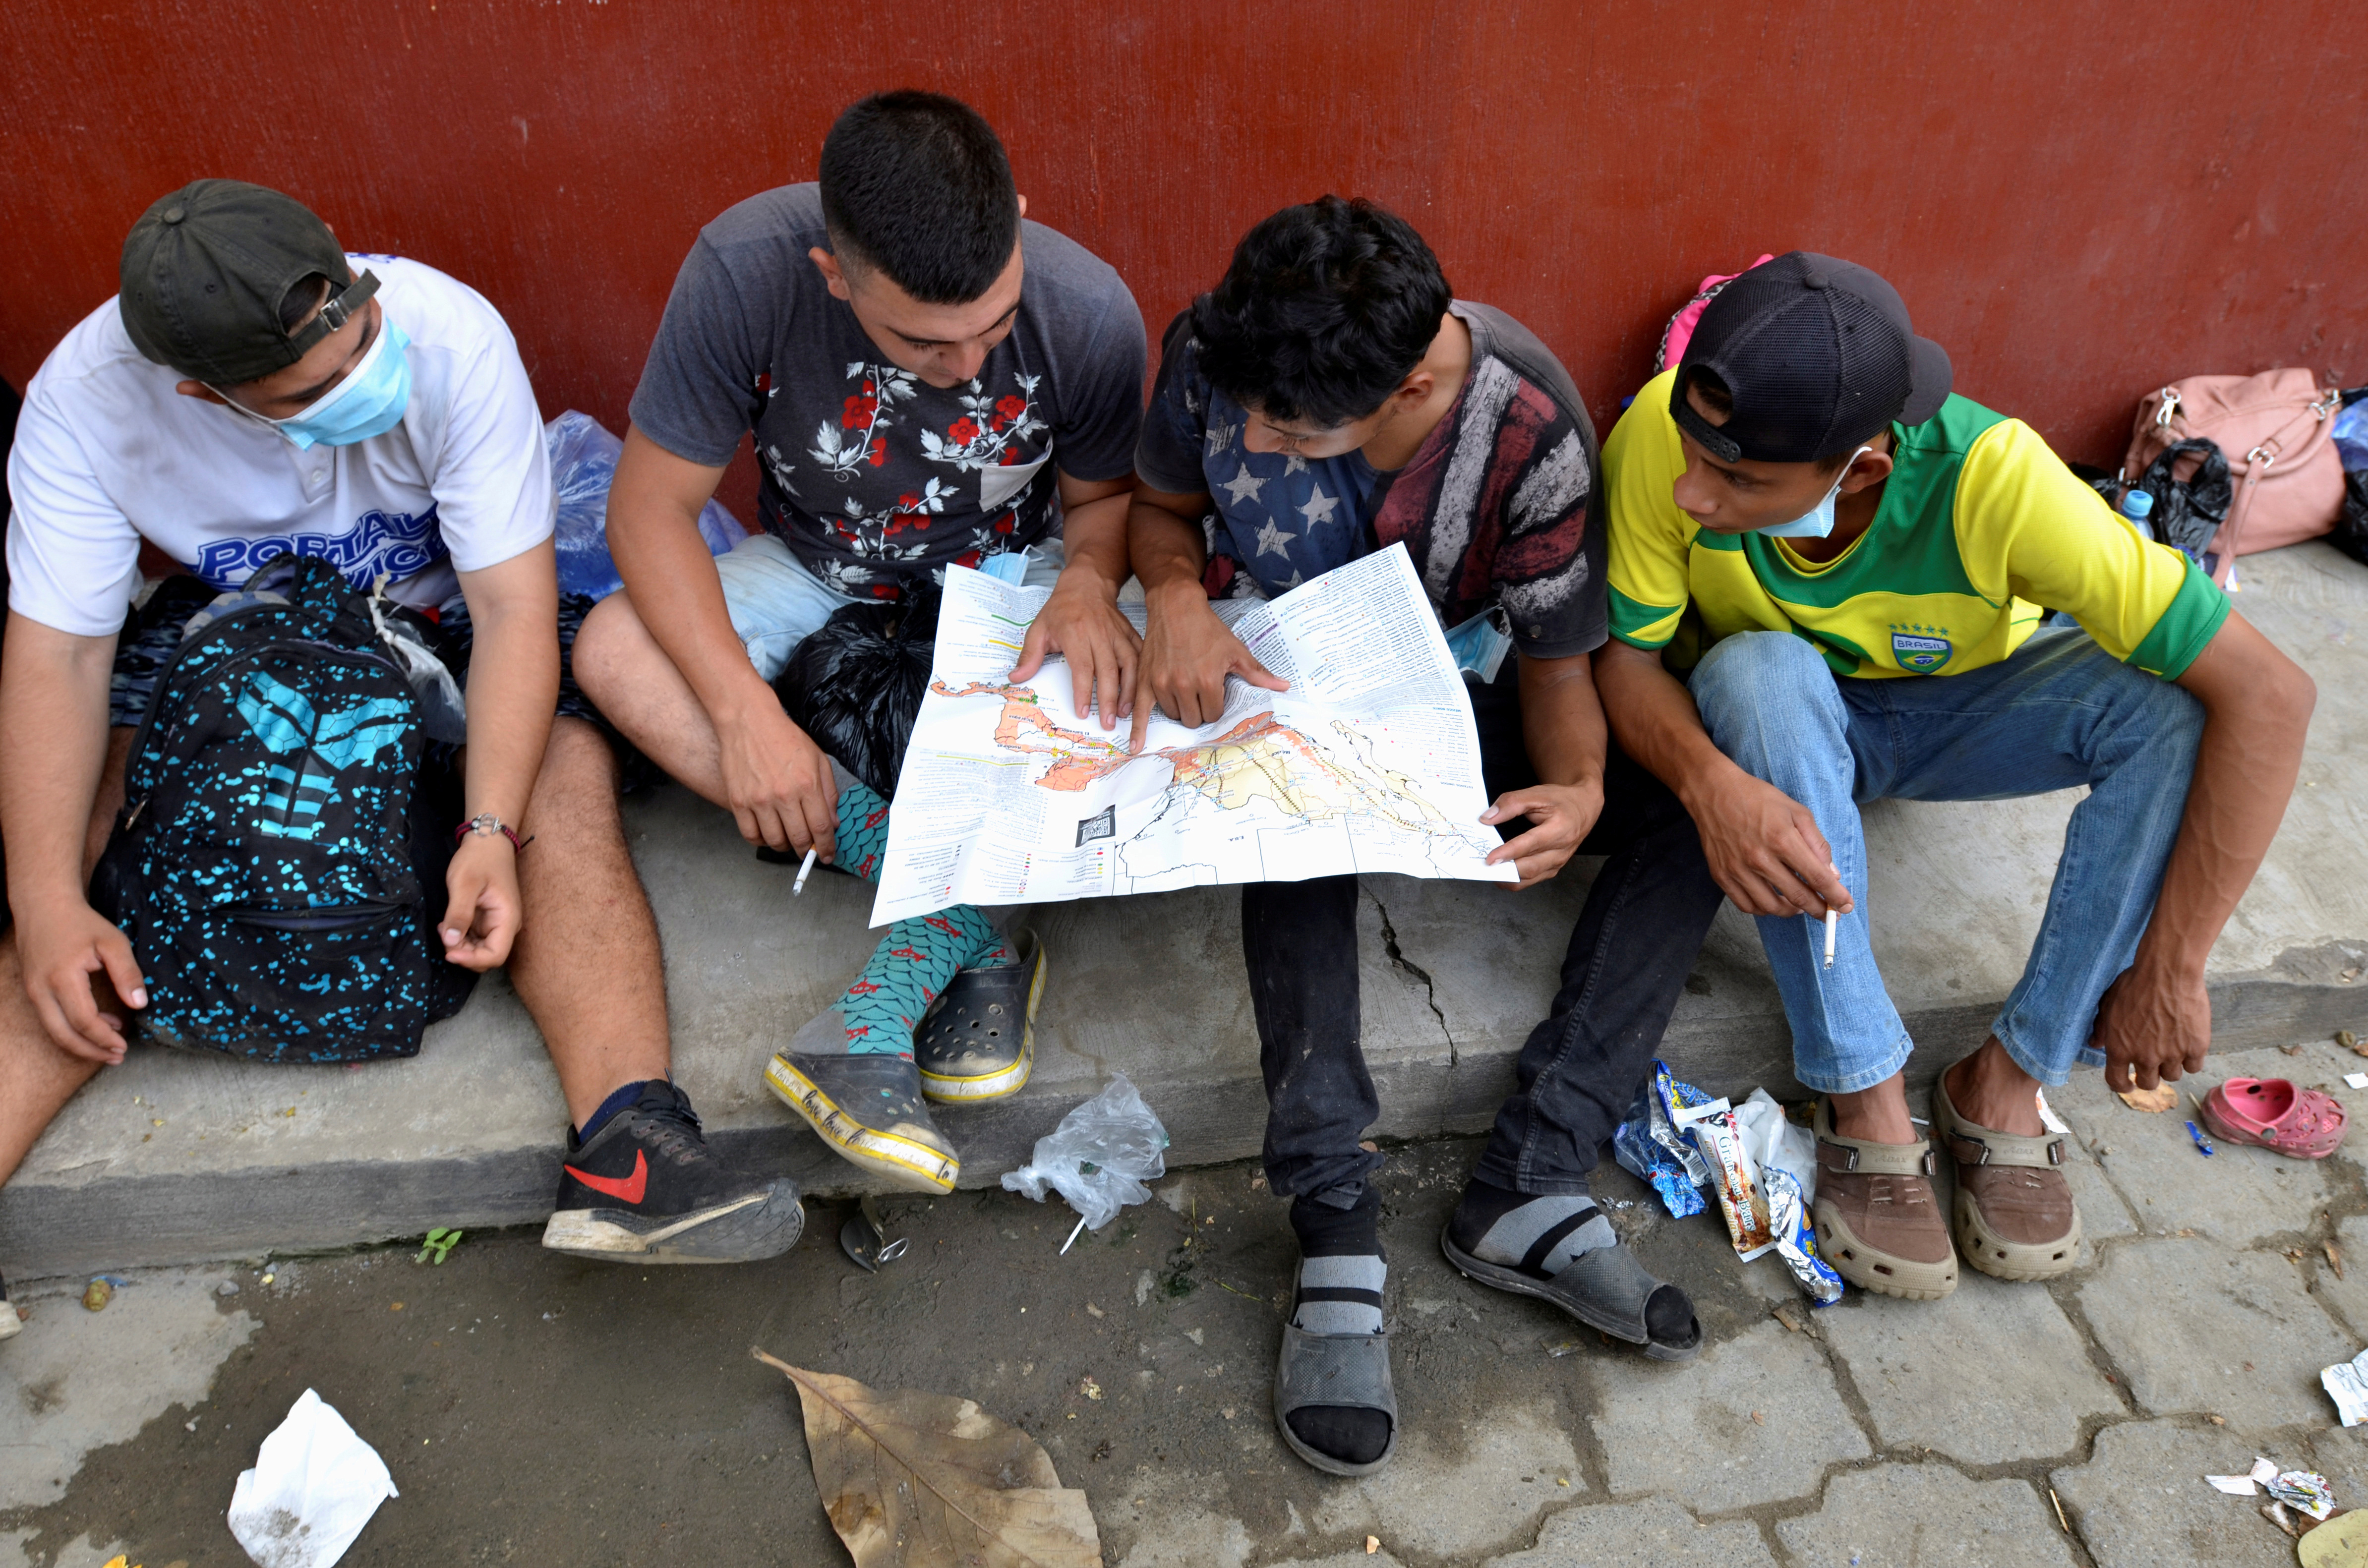 A group of Honduran migrants who are trying to reach the U.S. , look at a Central America and Mexico map outside a migrant shelter as they wait to move towards the Guatemala and Mexico border, in Tecun Uman, Guatemala October 3, 2020. REUTERS/Jose Torres/